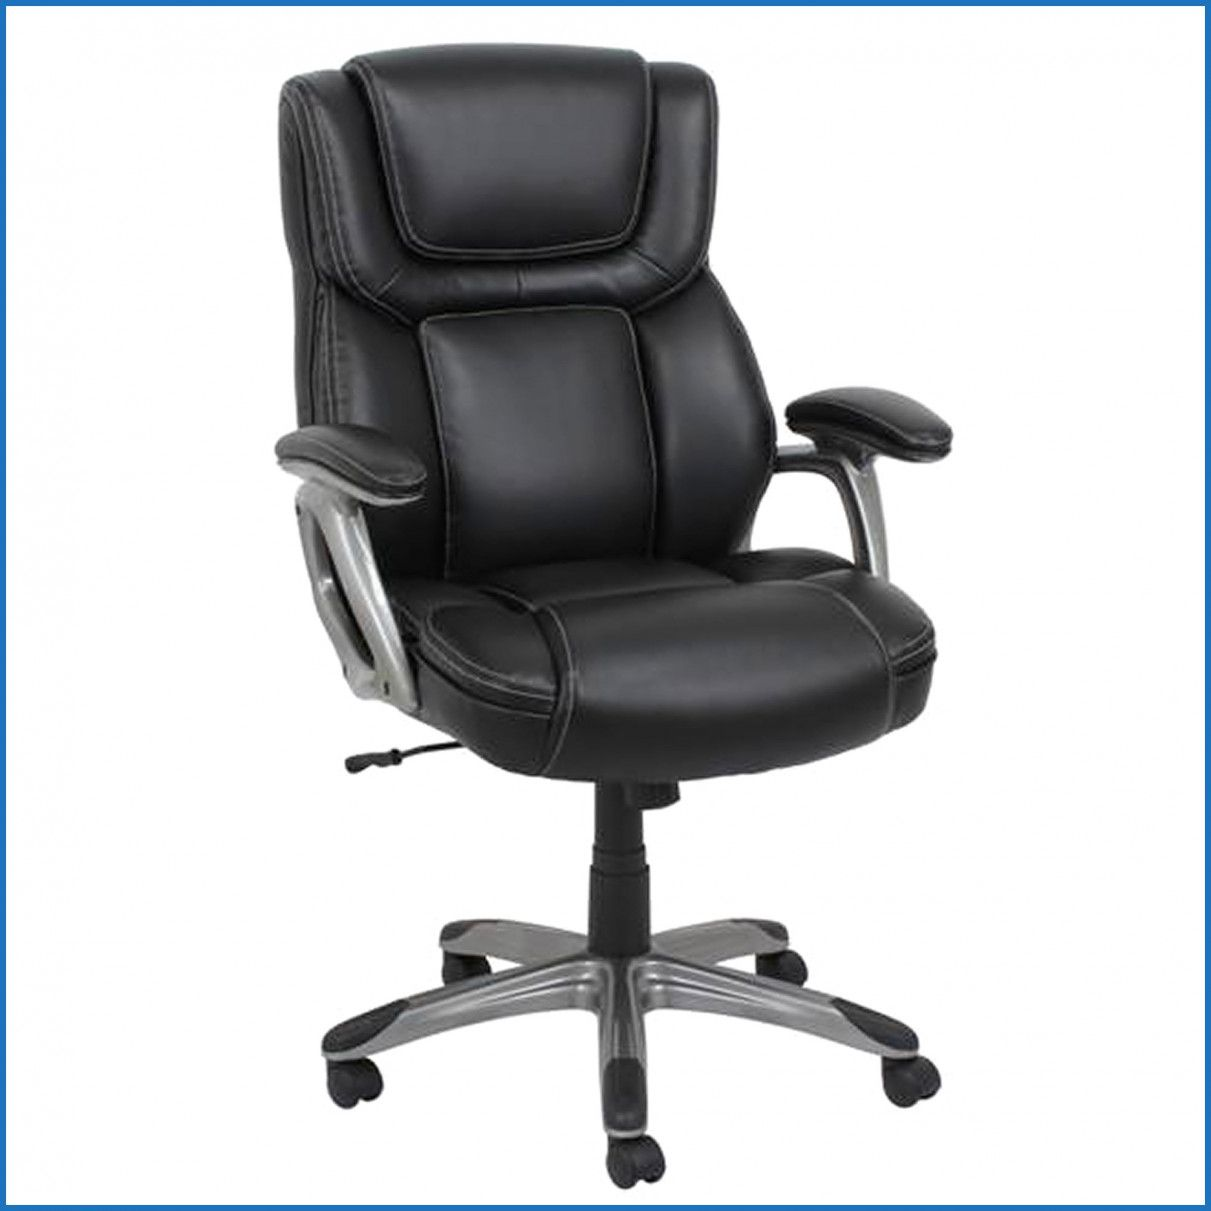 Bjs Office Chairs Furniture For Home Check More At Http Invisifile